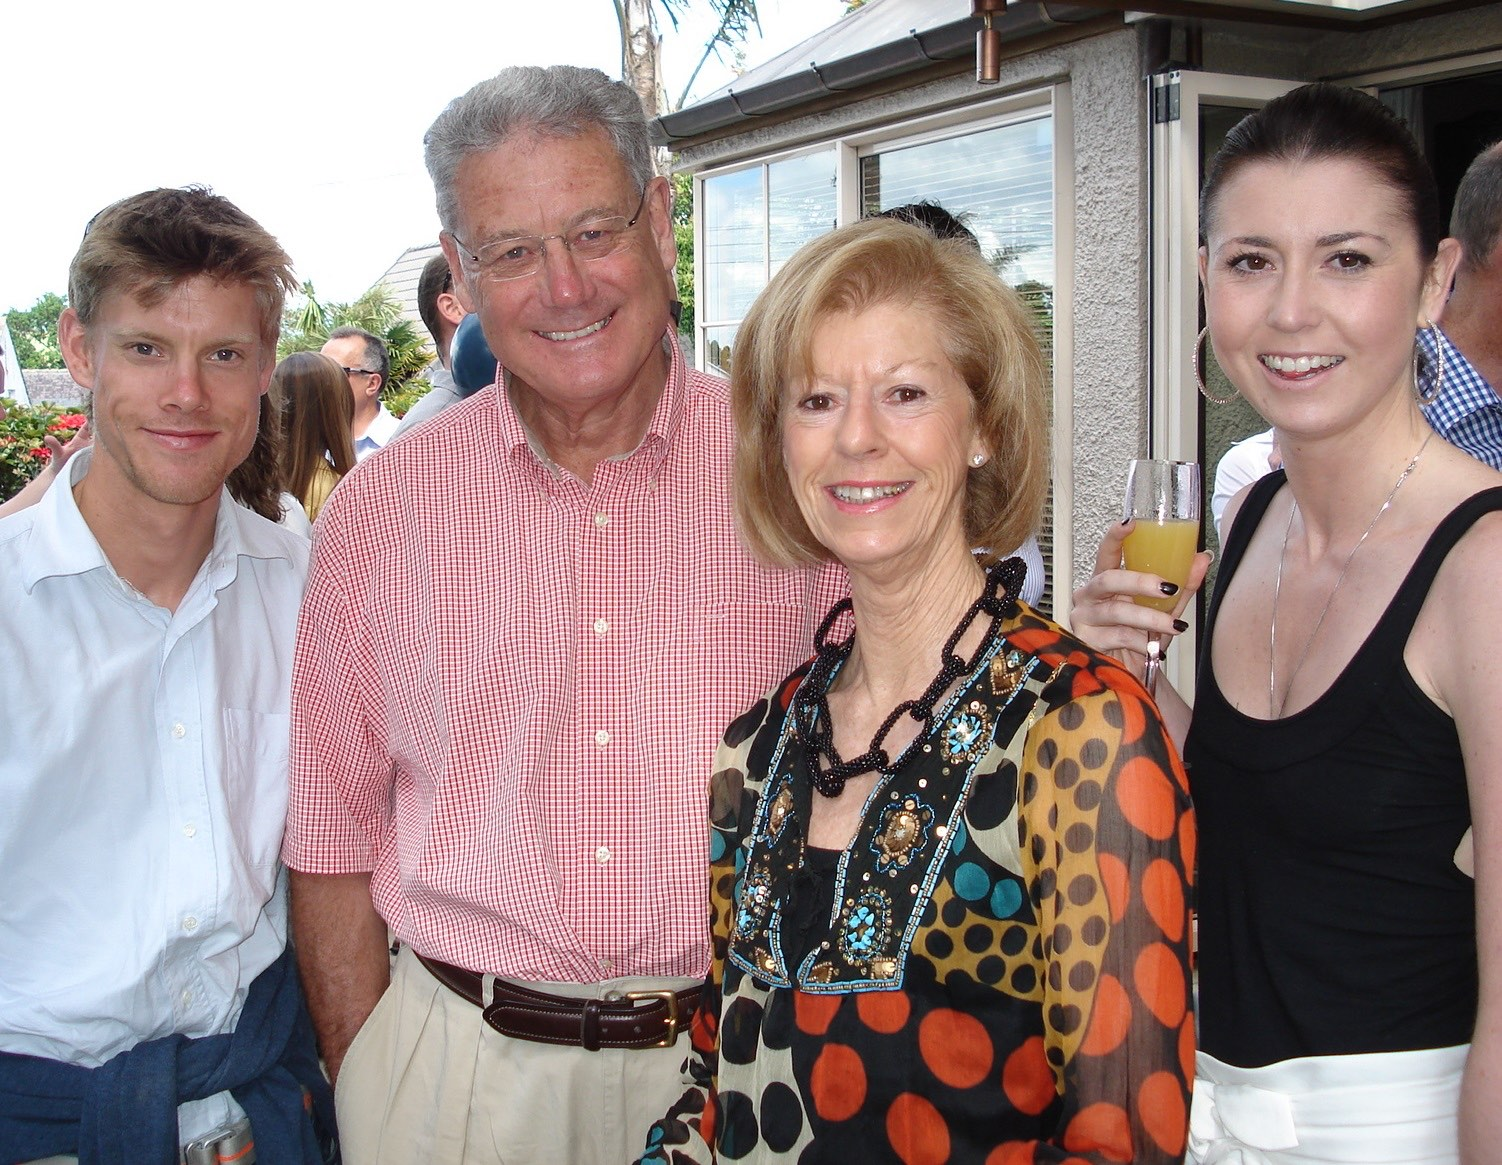 The Montgomerys - Johnny, Peter, Claudia and Kate find plenty to smile about